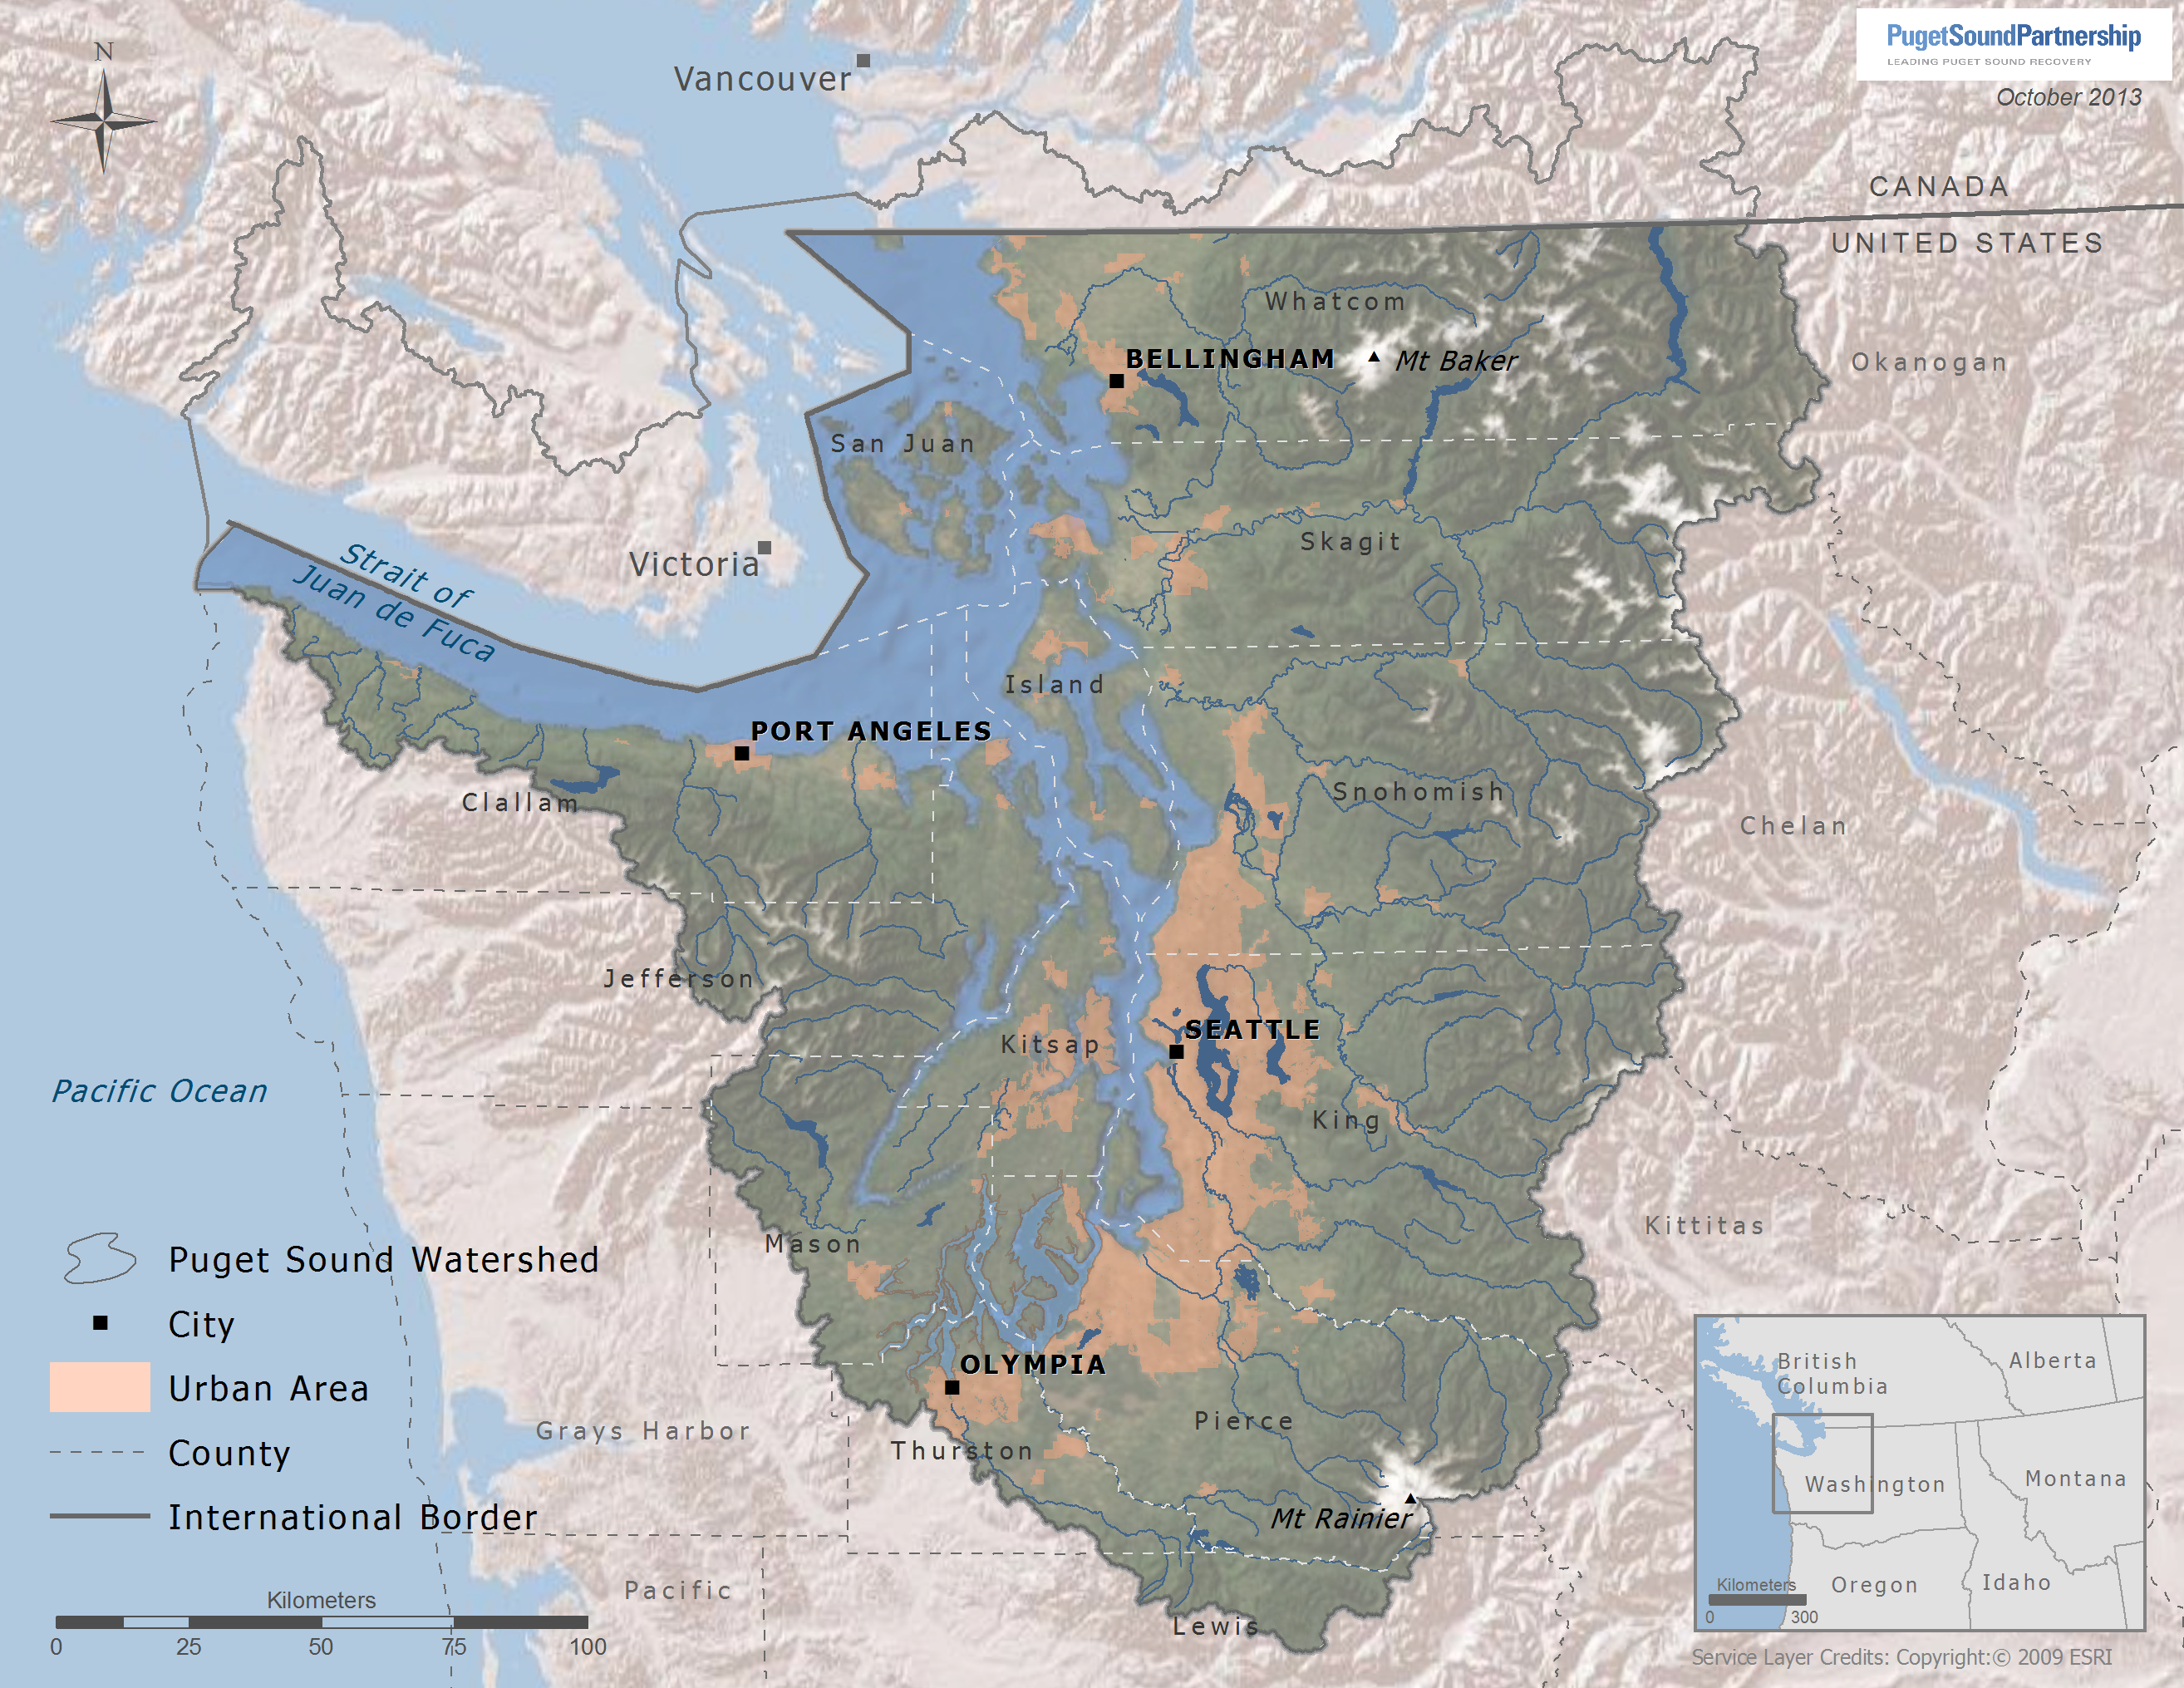 Olympic peninsula boundaries in dating 4